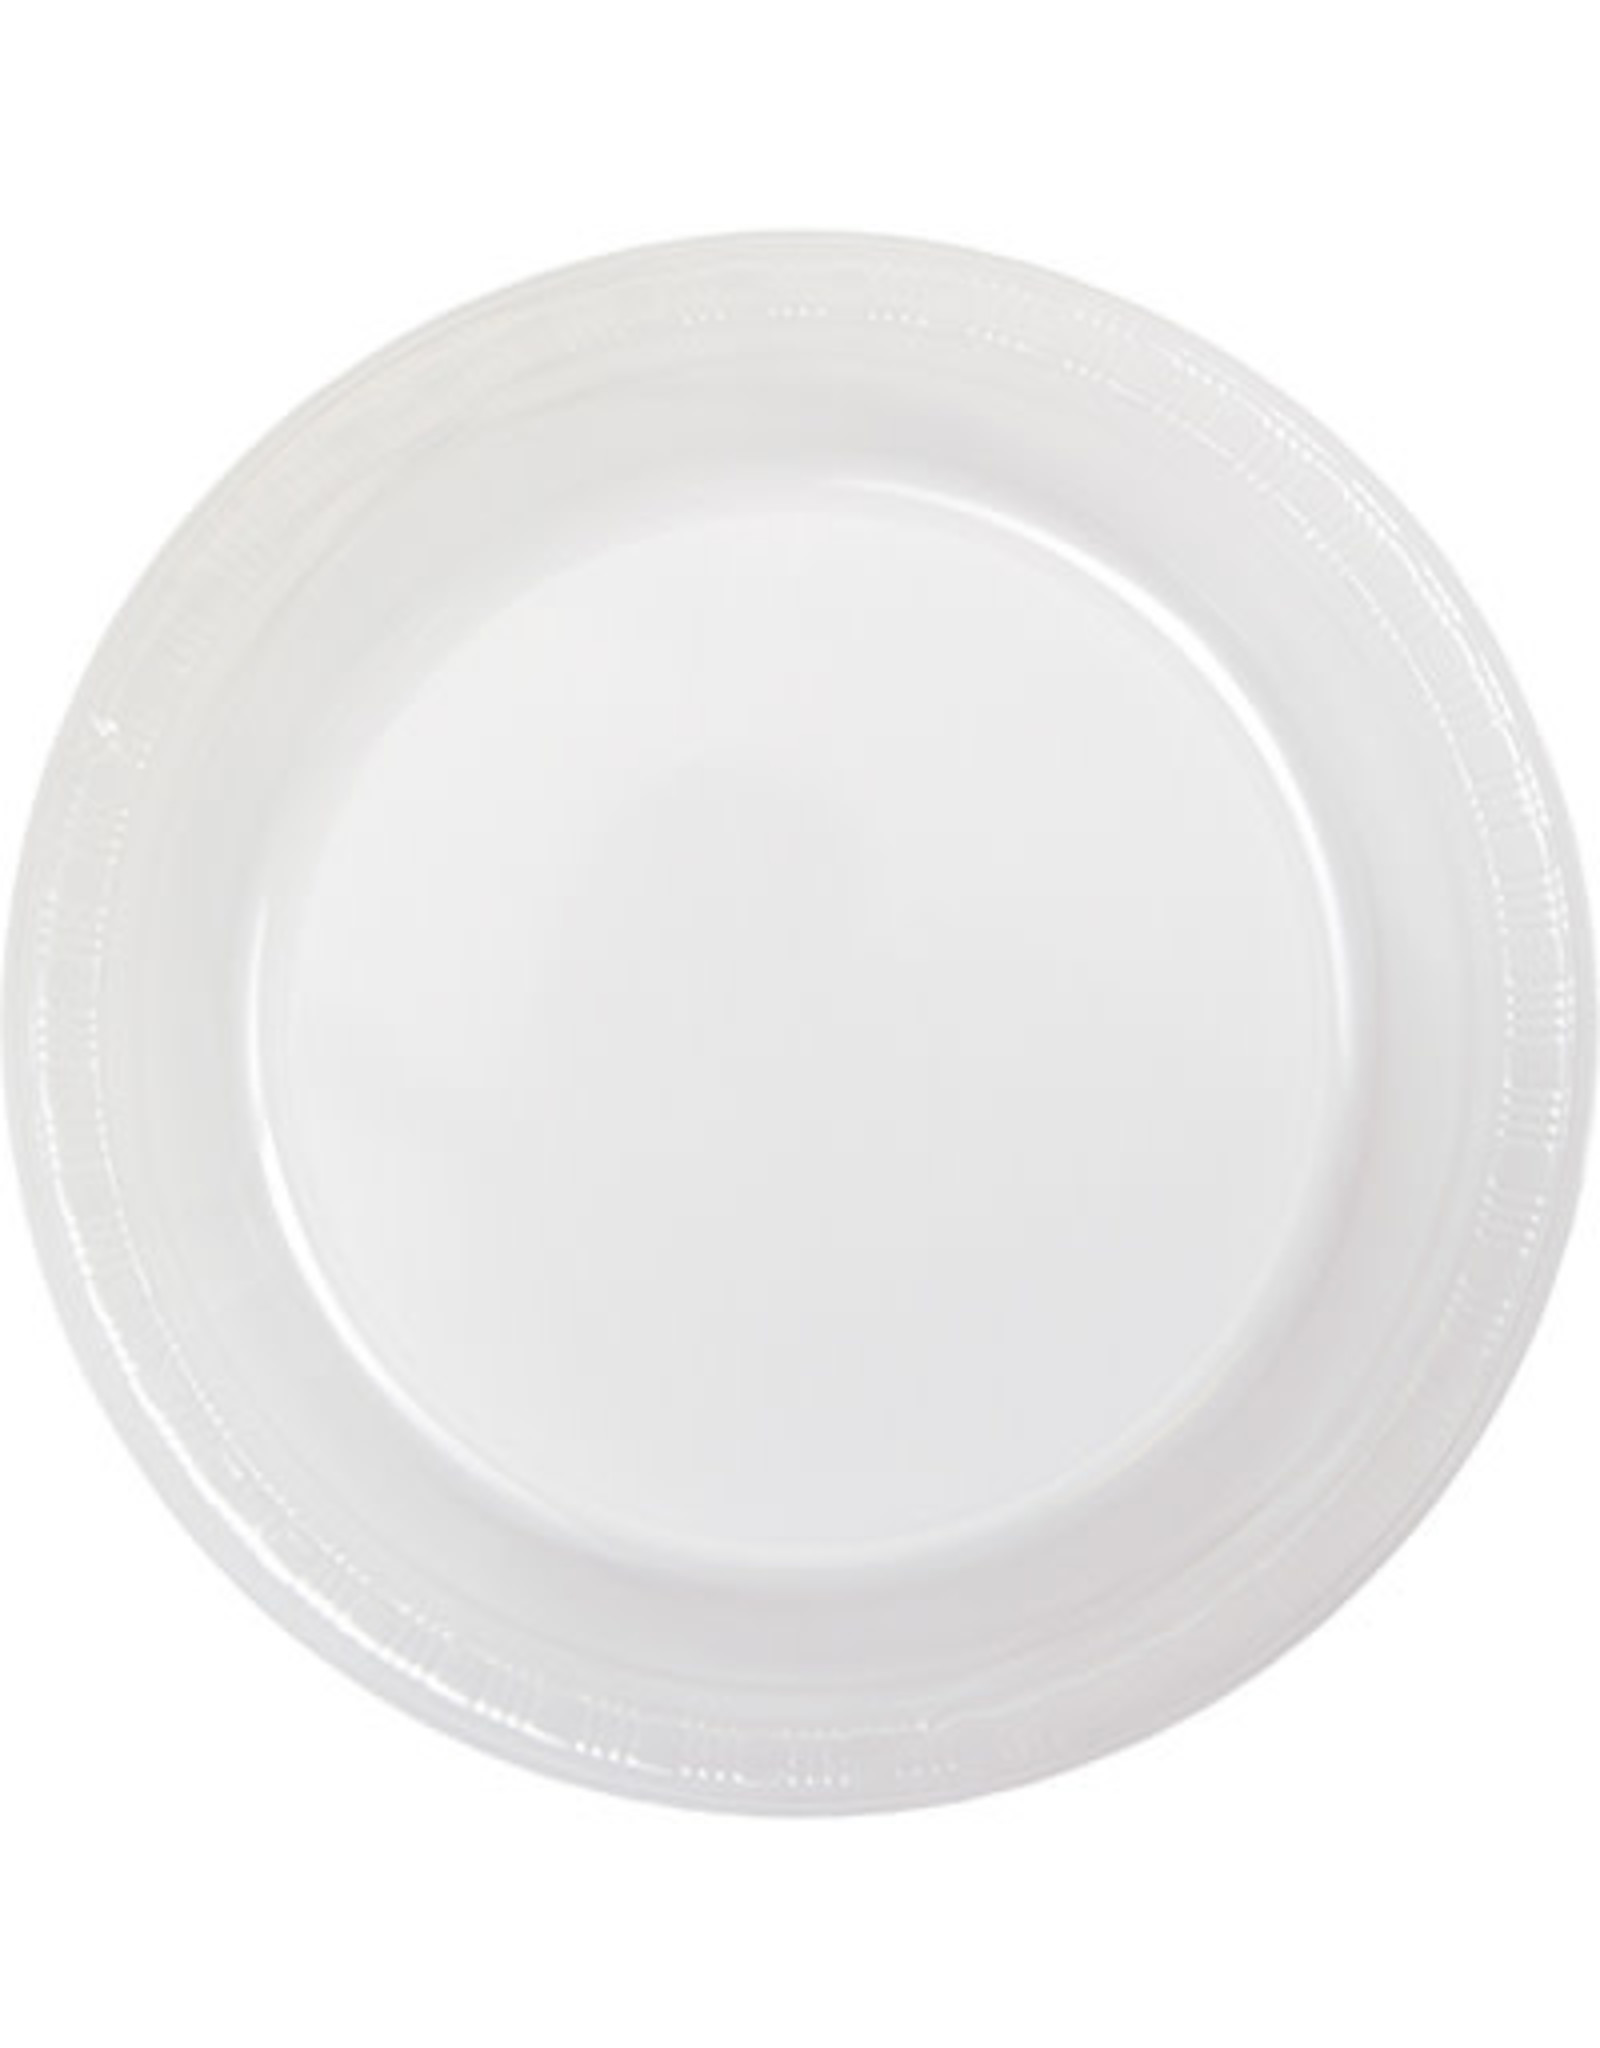 Touch of Color CLEAR PLASTIC BANQUET PLATES